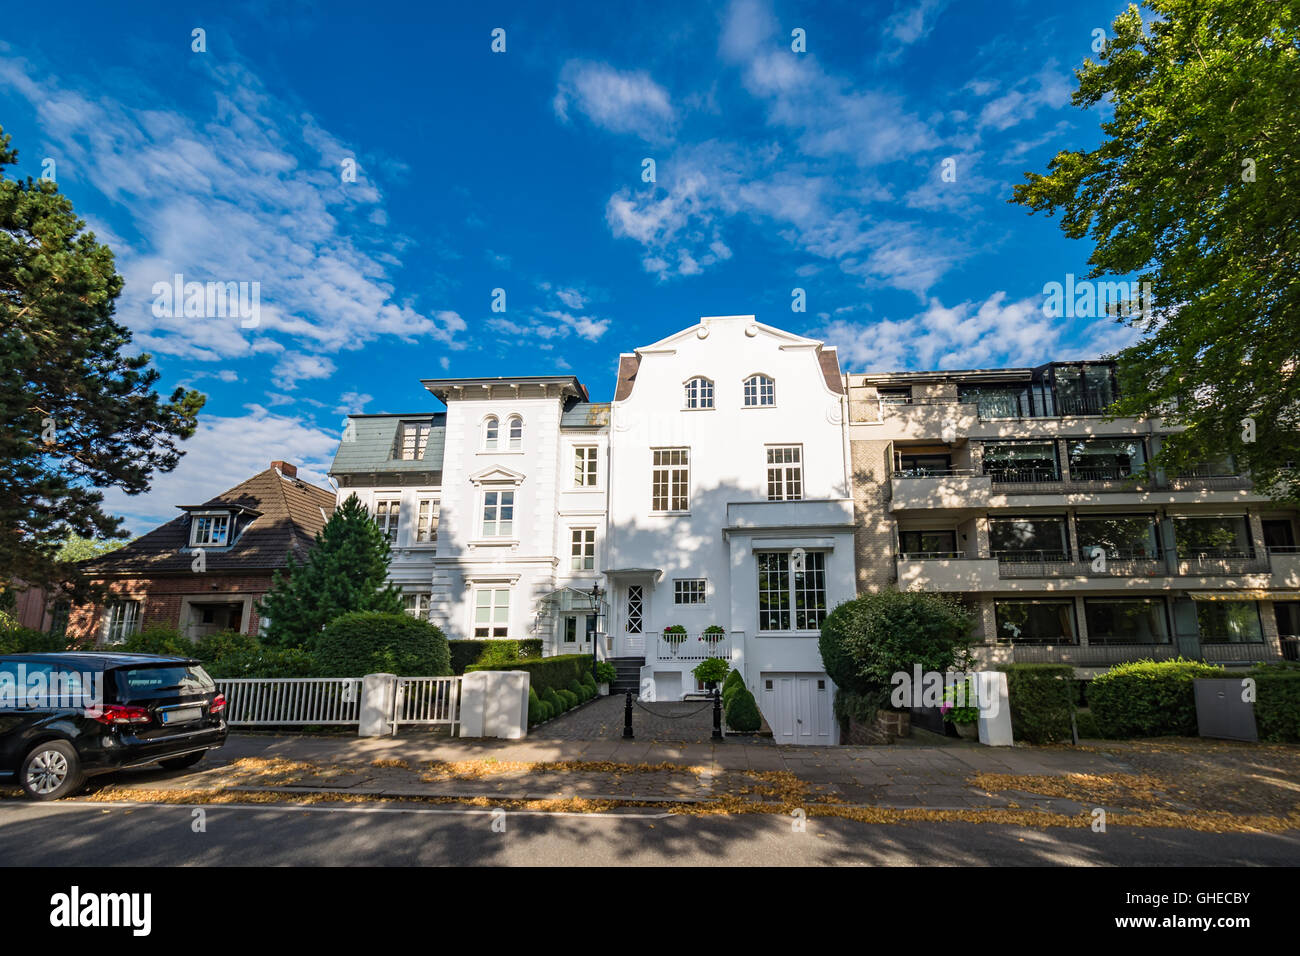 Luxury old mansions in Winterhude neighbourhood against blue sky on a sunny summer day, image for real estate agent - Stock Image